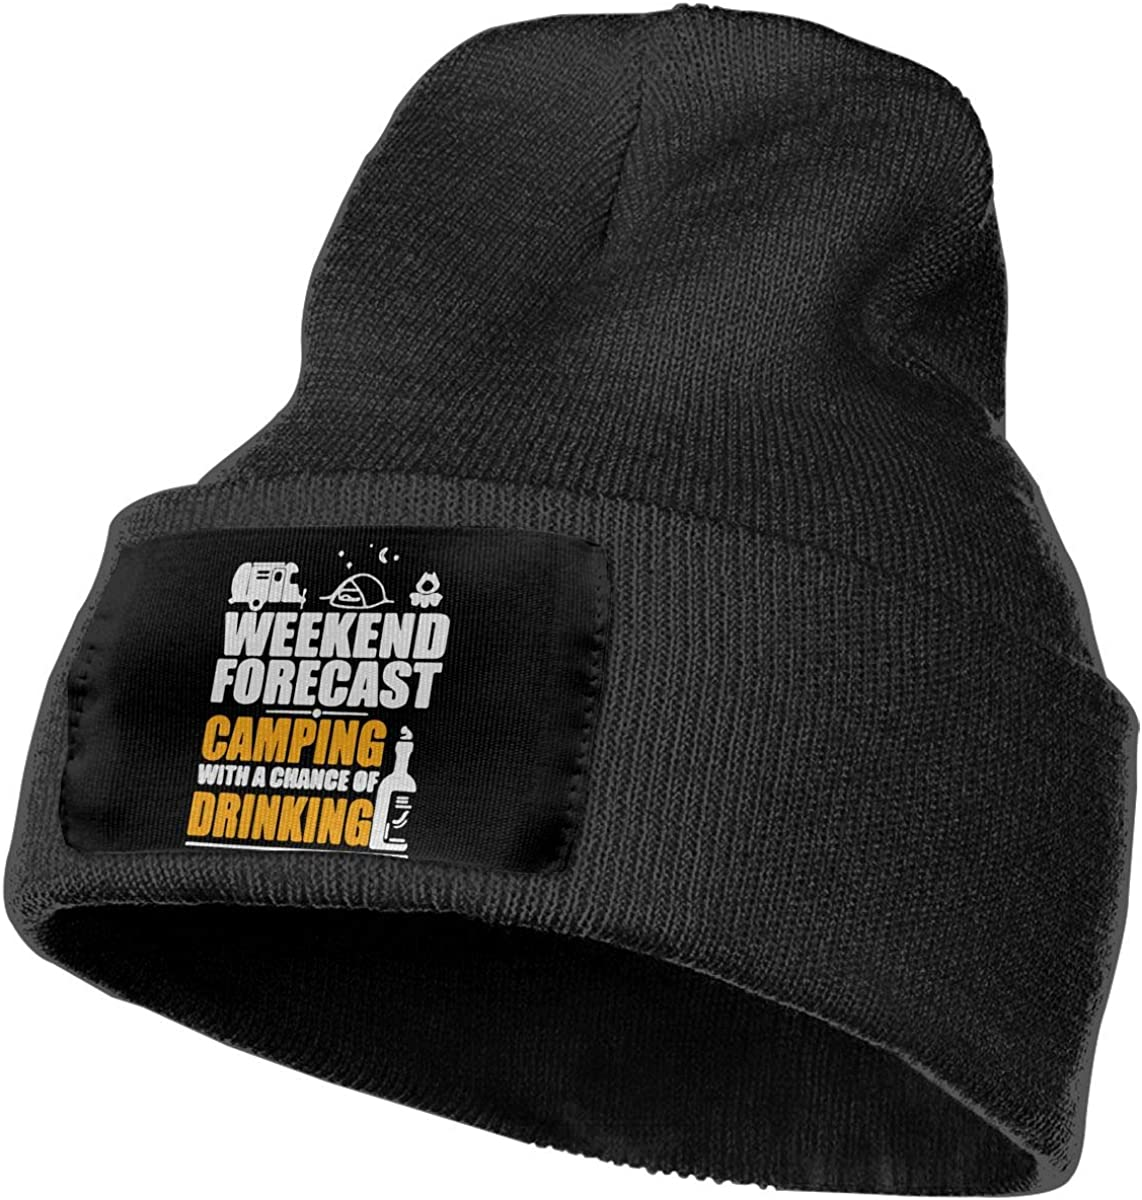 Weekend Forecast Camping with A Chance of Drinking Fashion Ski Cap Ydbve81-G Unisex 100/% Acrylic Knitting Hat Cap